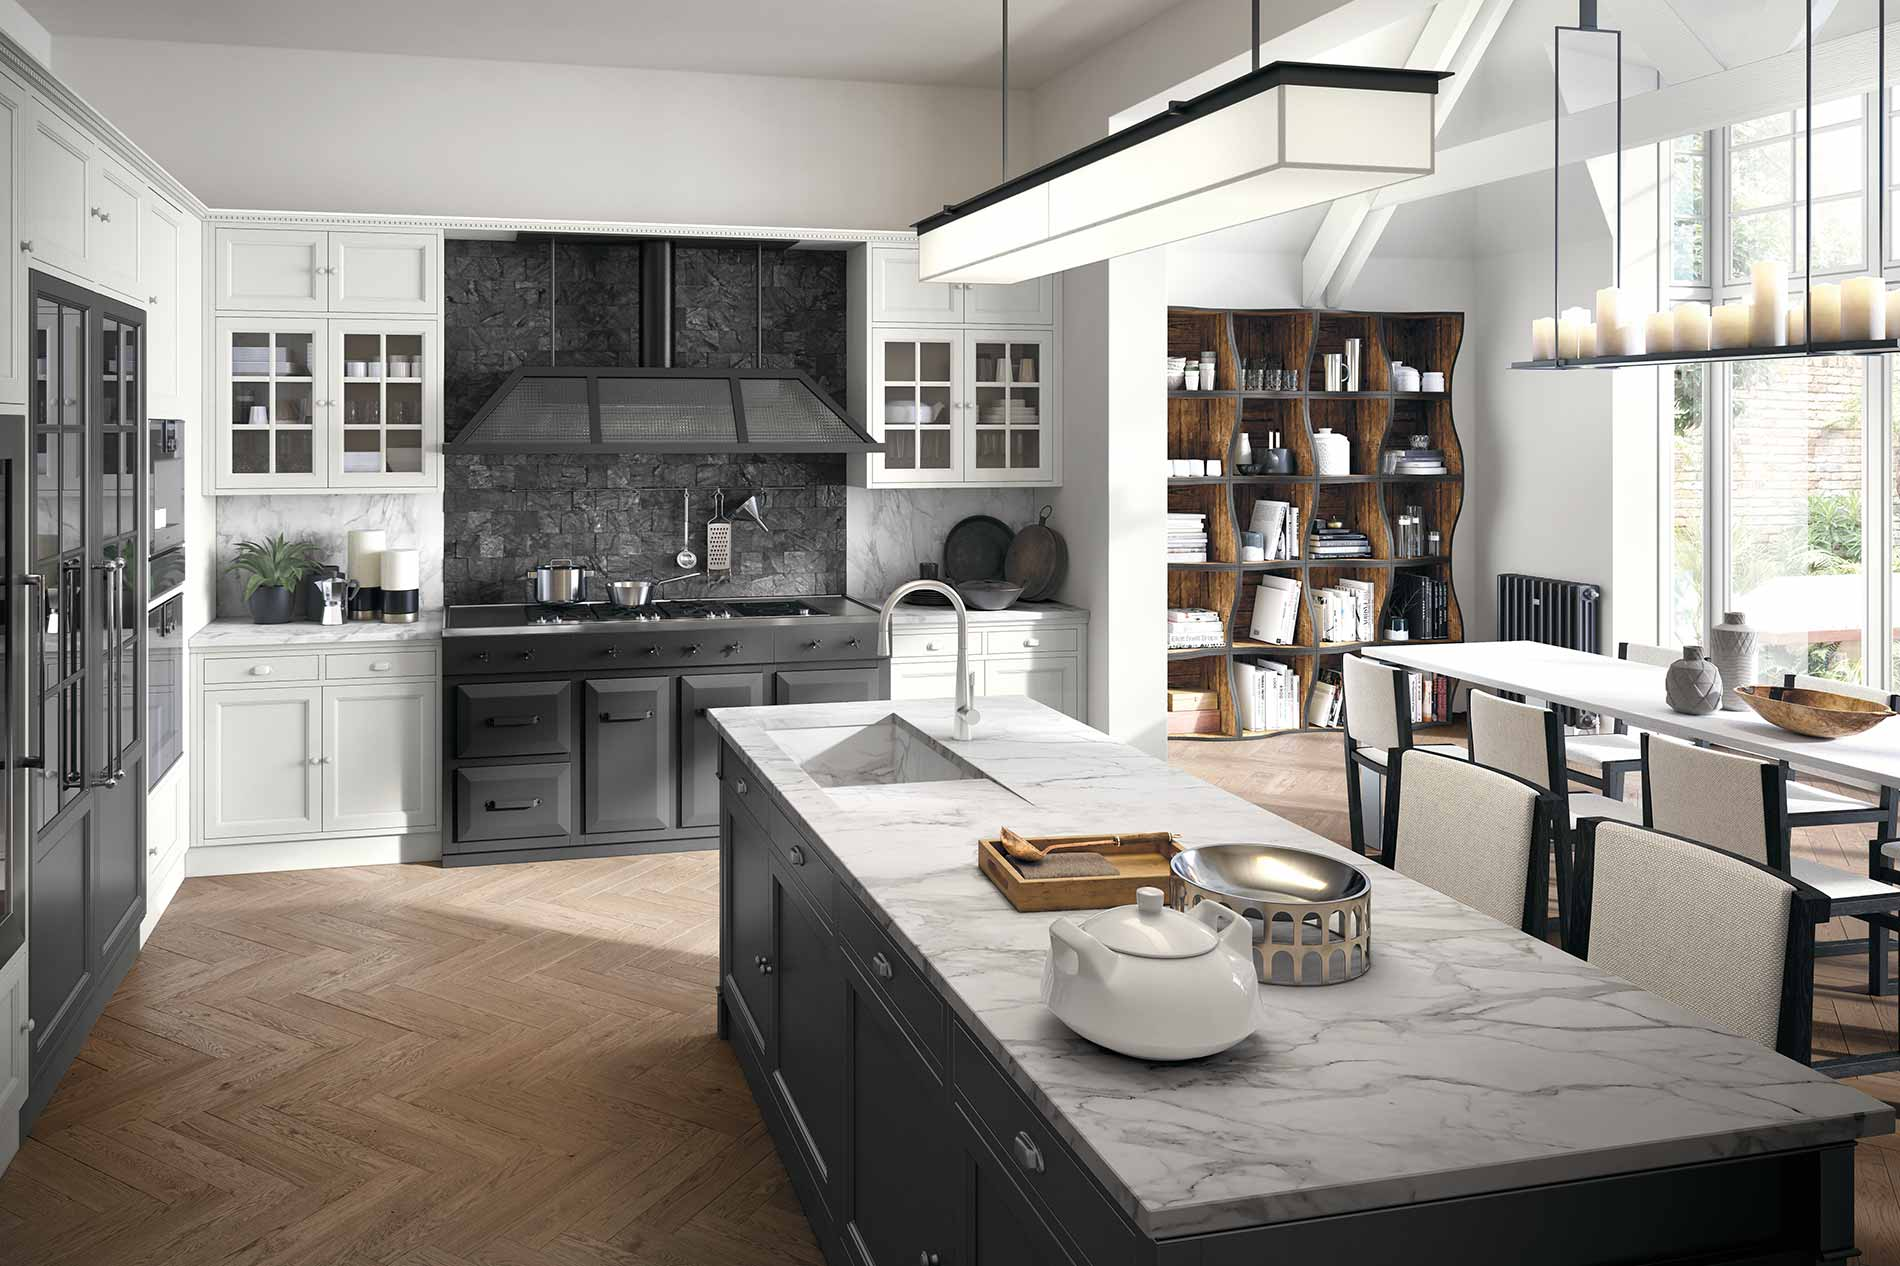 Artis - Marchi Cucine Made in Italy